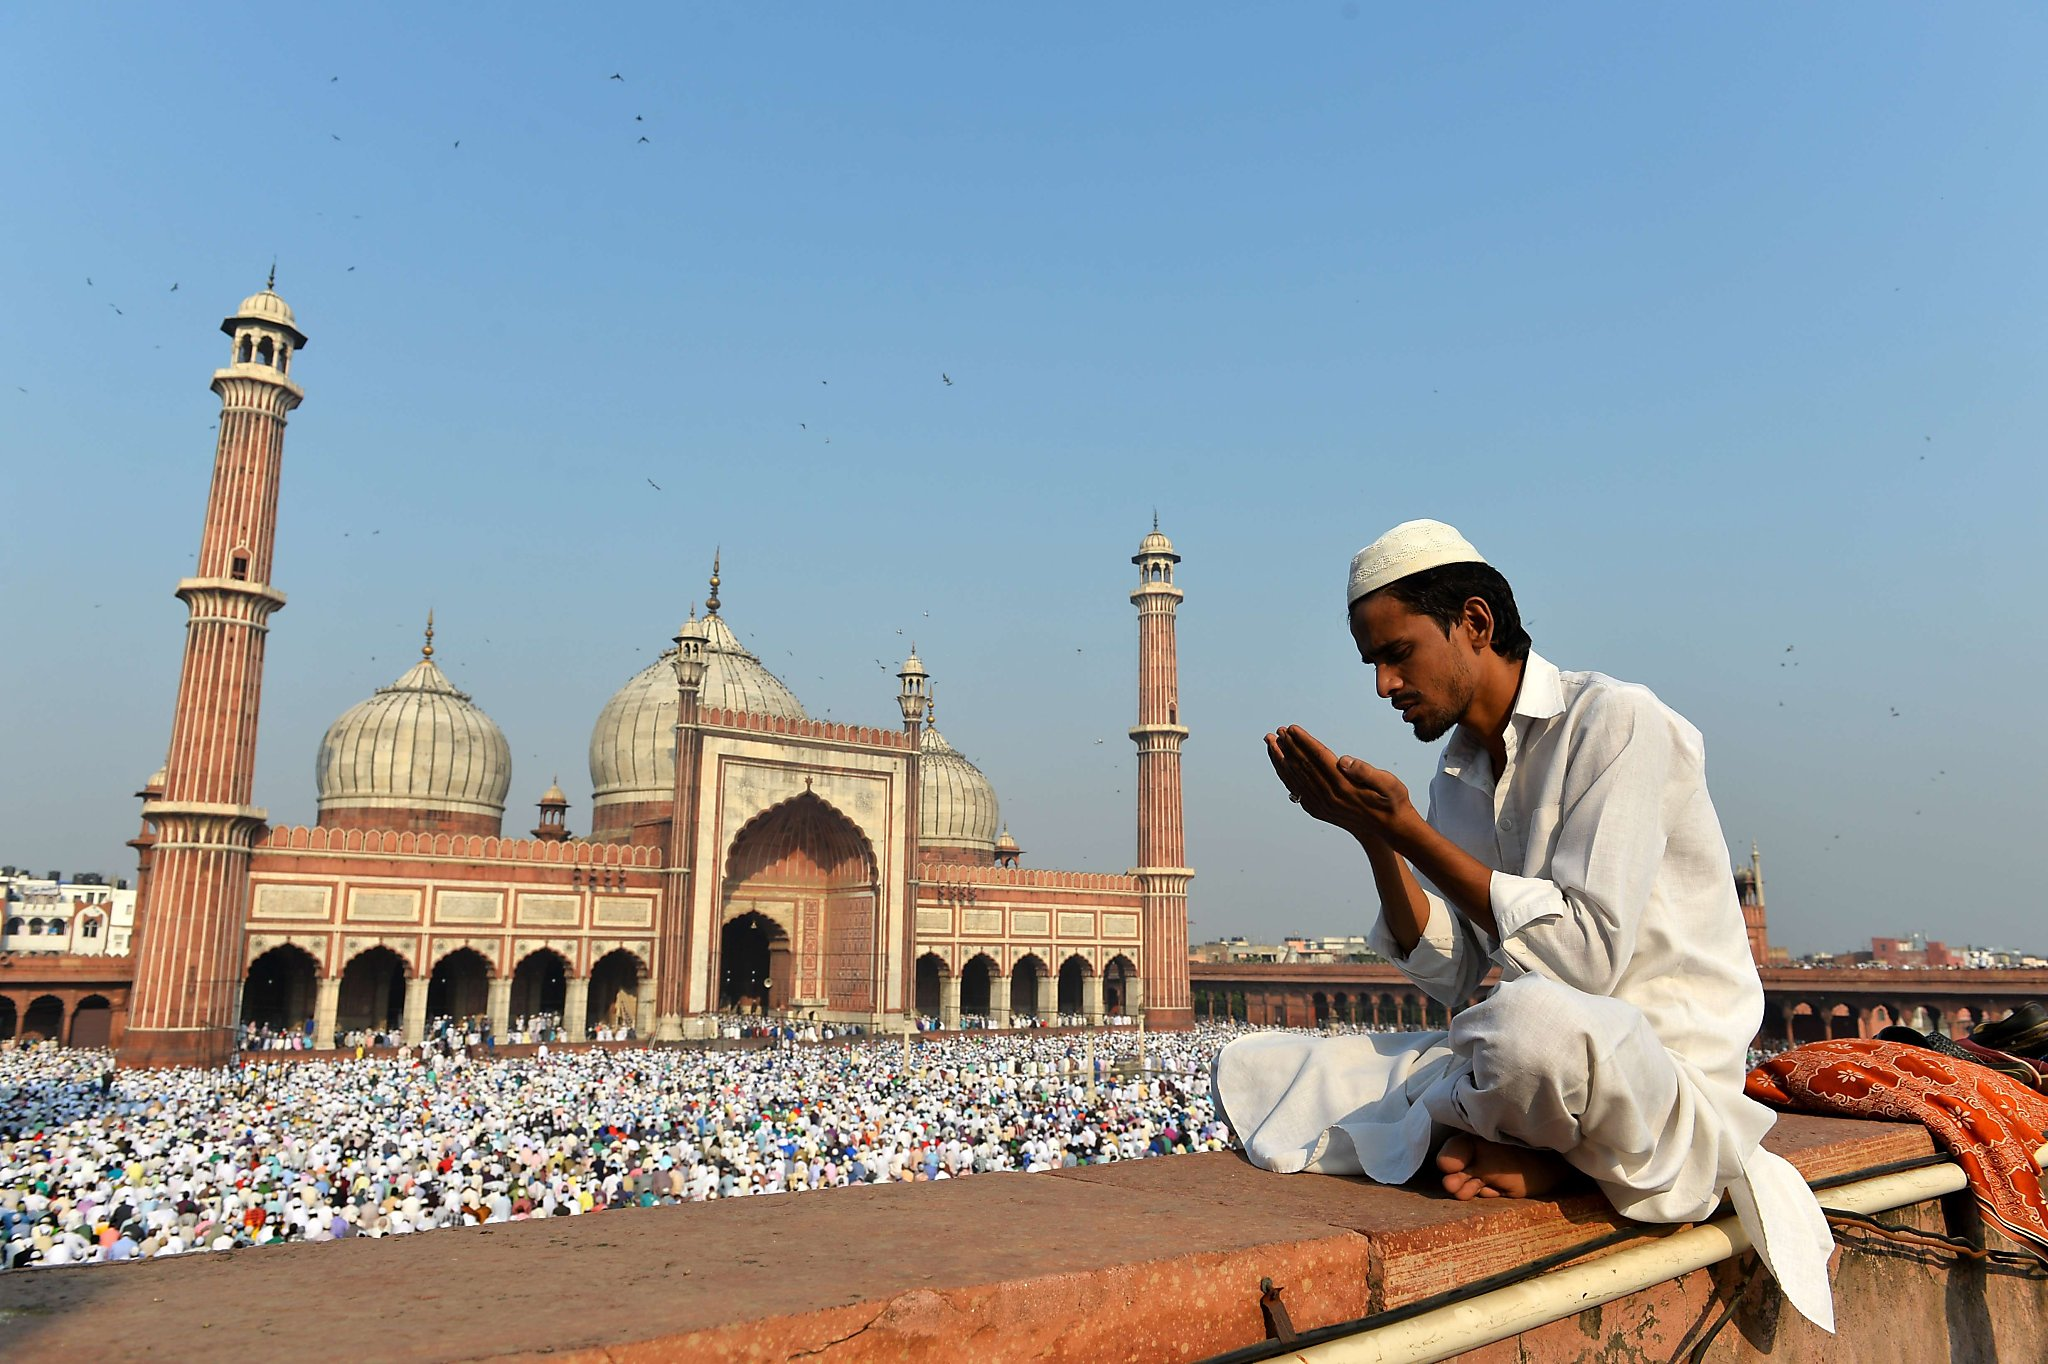 Essays About Islam Religion